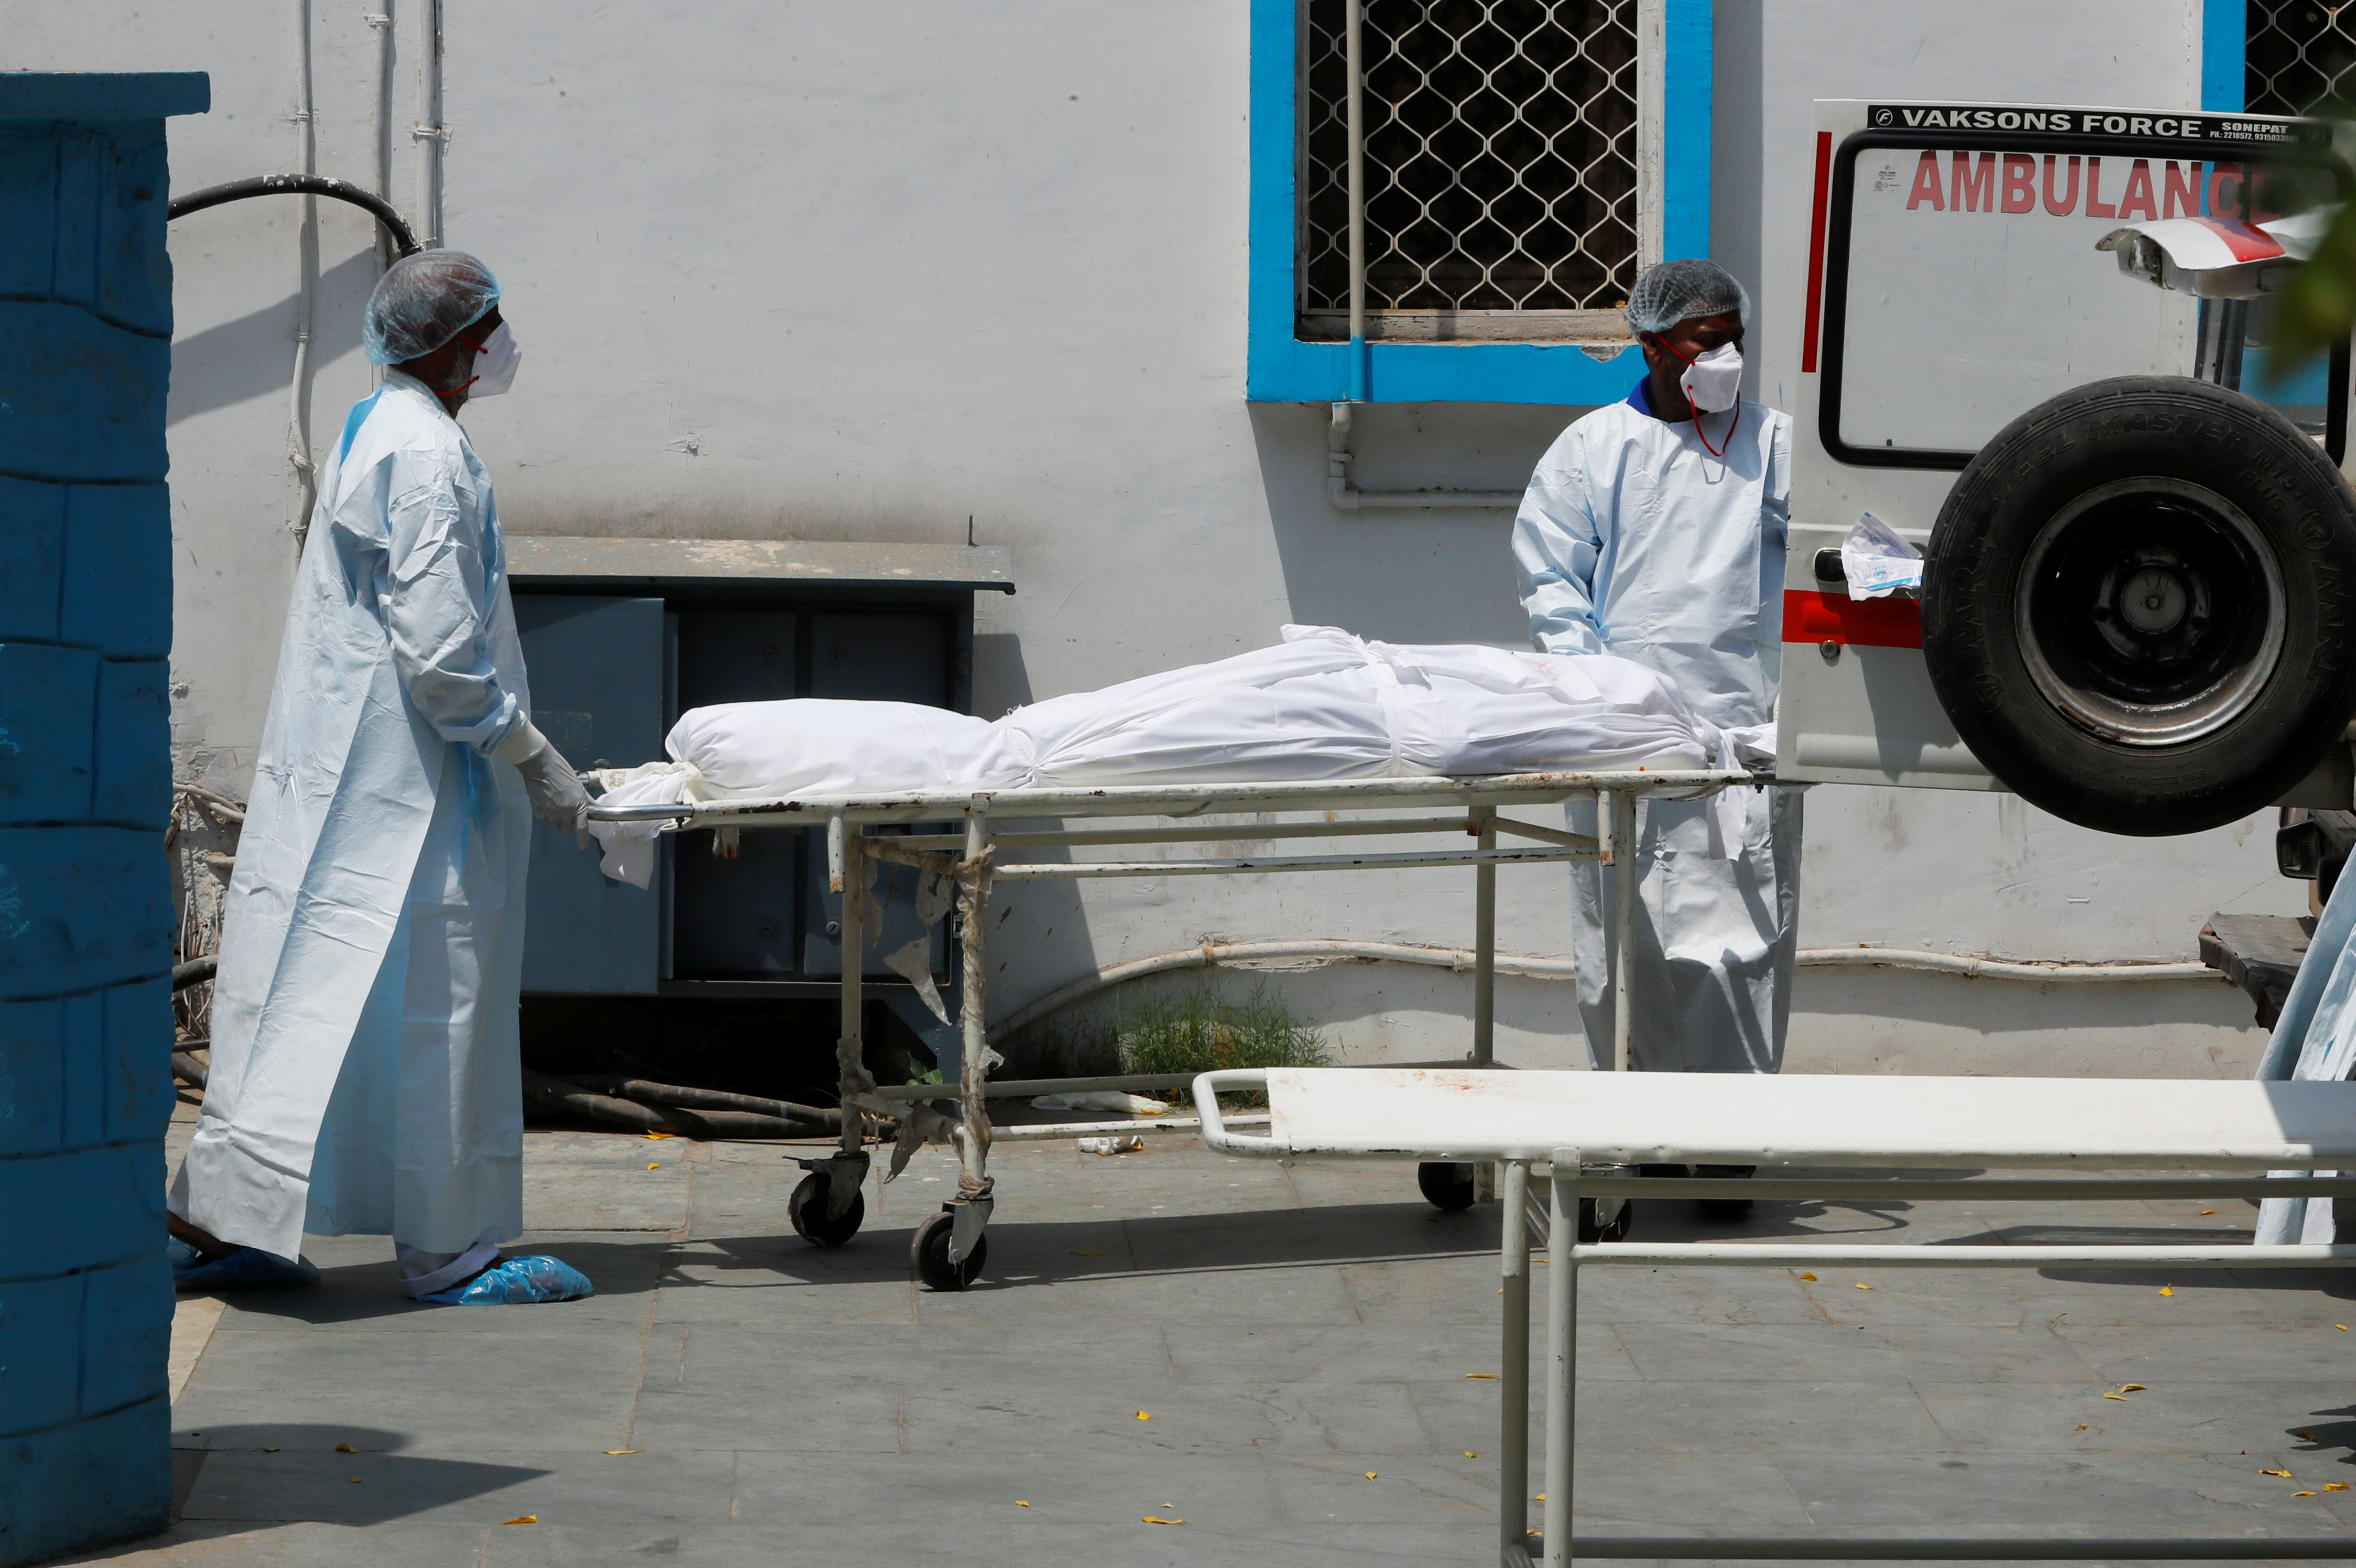 Mortuary workers load the body of a person, who died from the coronavirus disease (COVID-19), to an ambulance for cremation, at a hospital in New Delhi, India May 5, 2021. REUTERS/Adnan Abidi